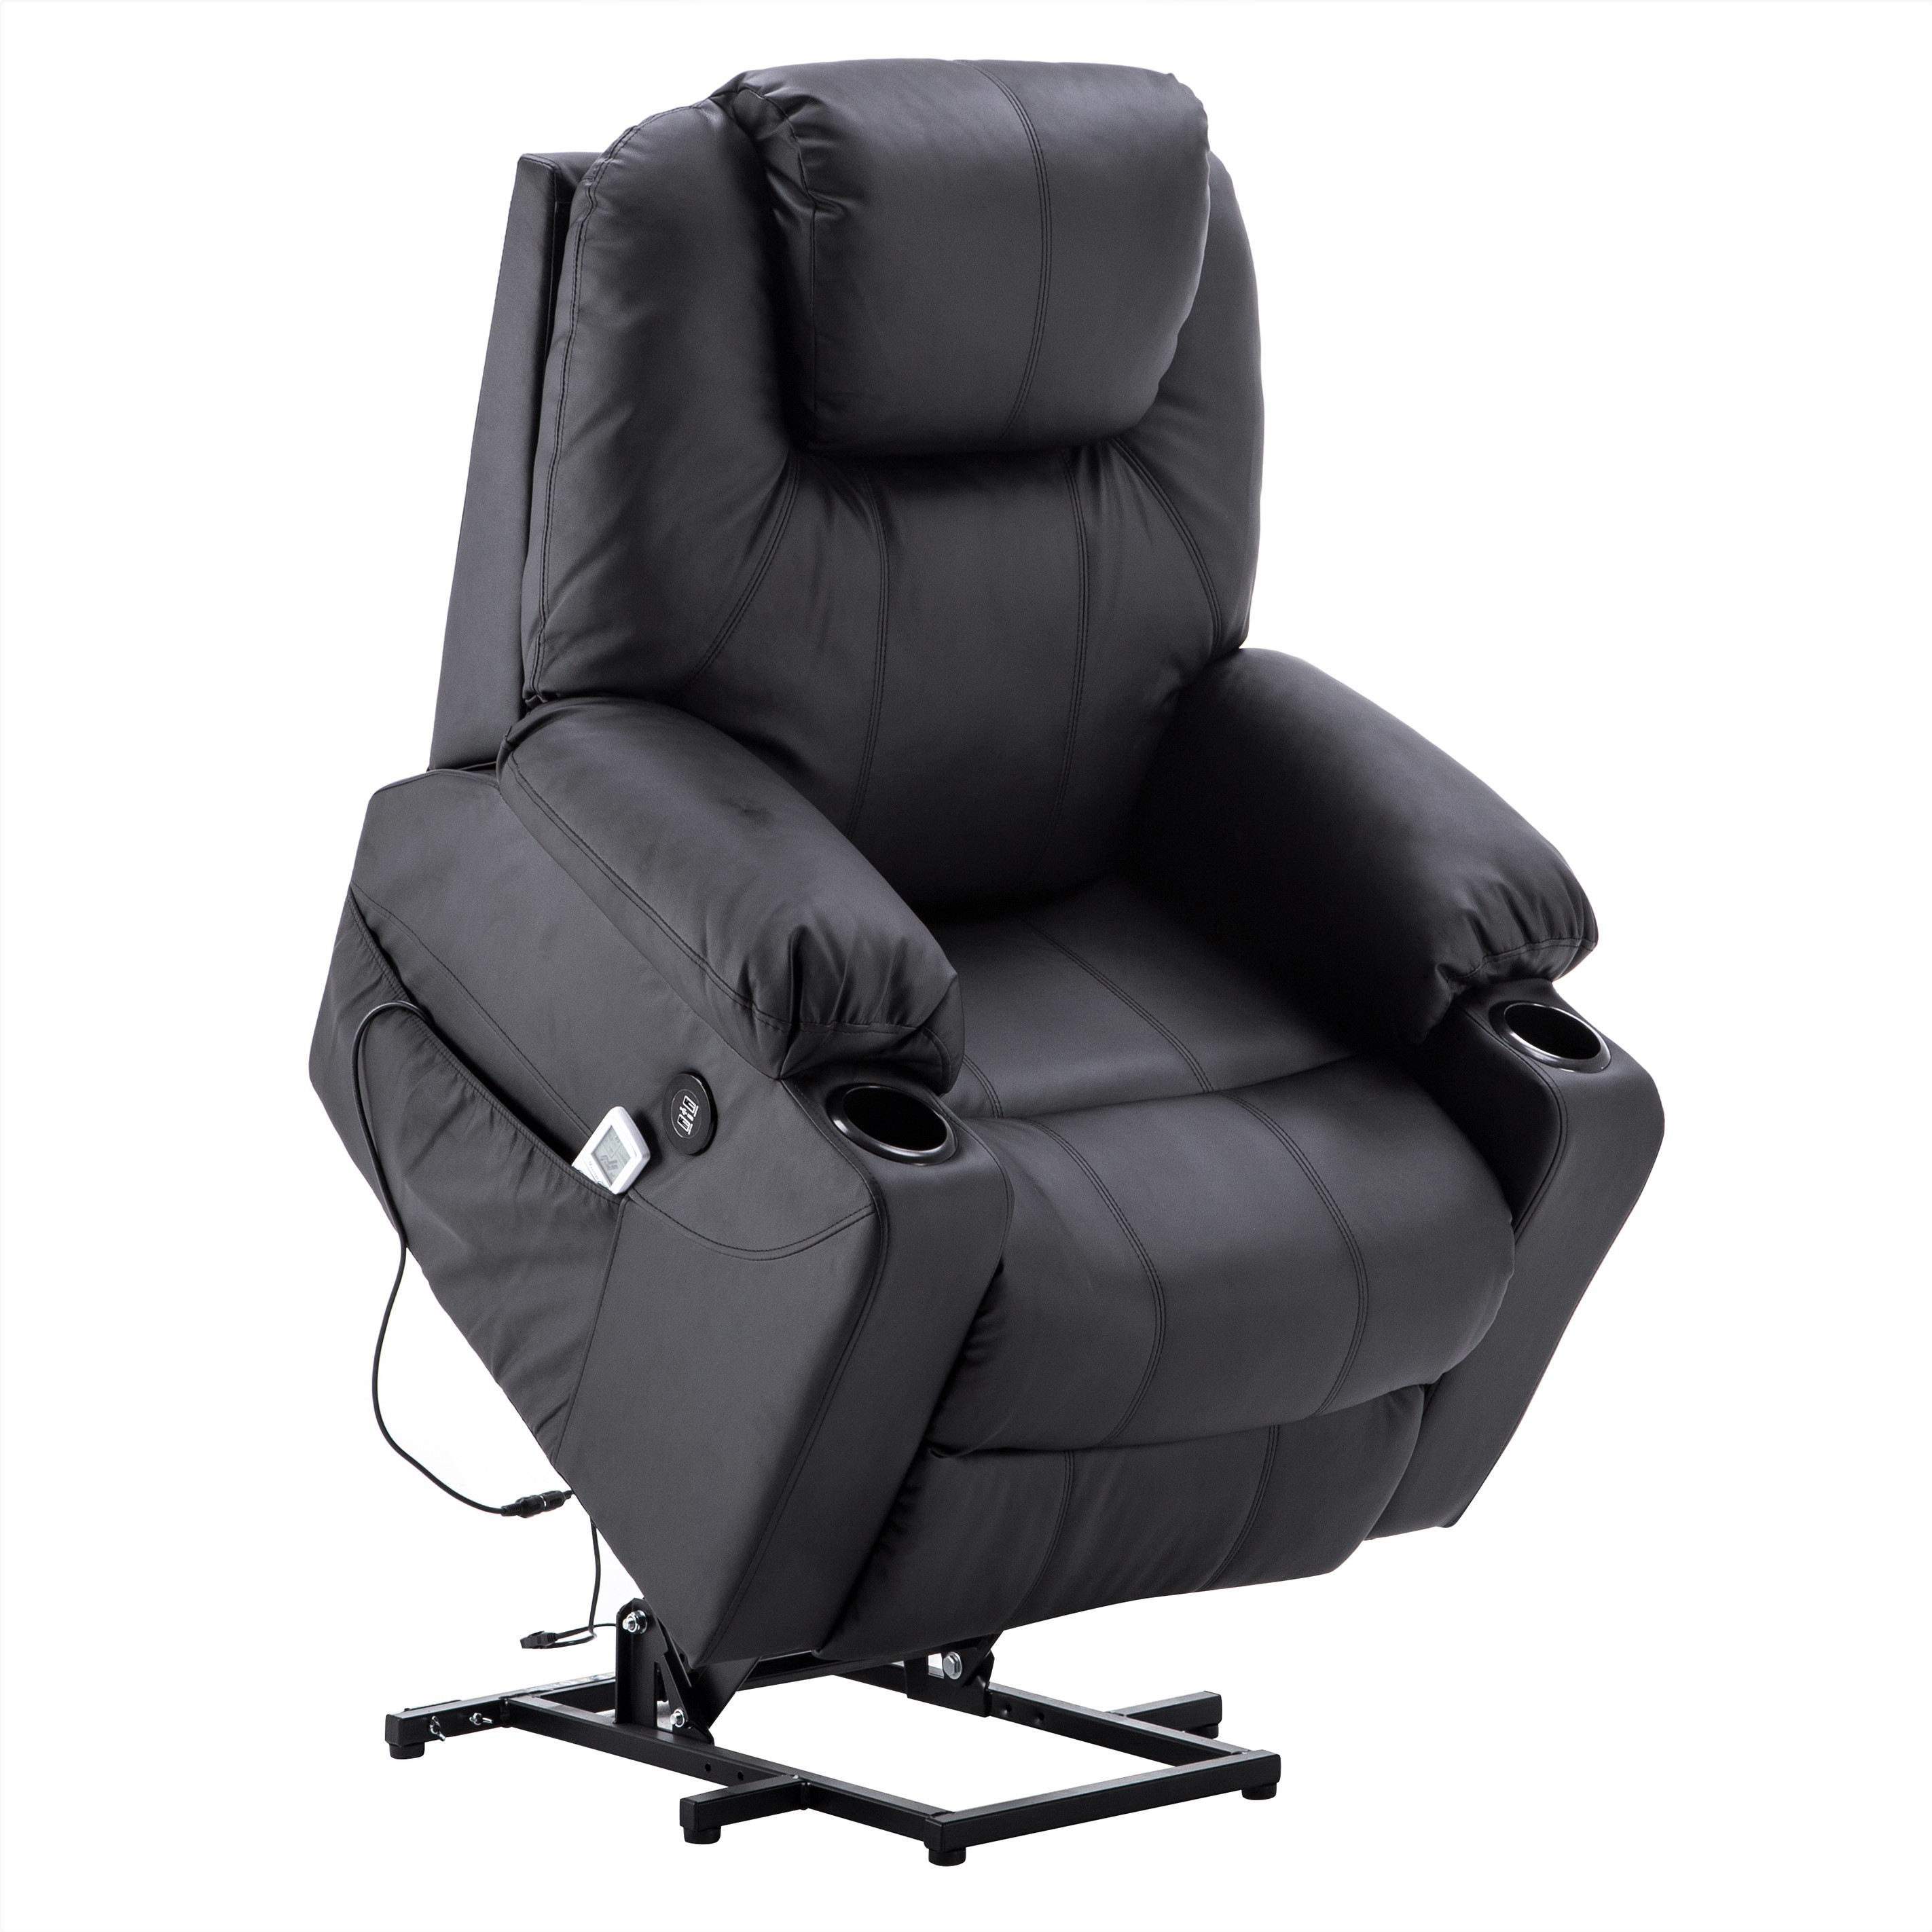 electric power lift massage sofa recliner heated chair lounge w rh walmart com